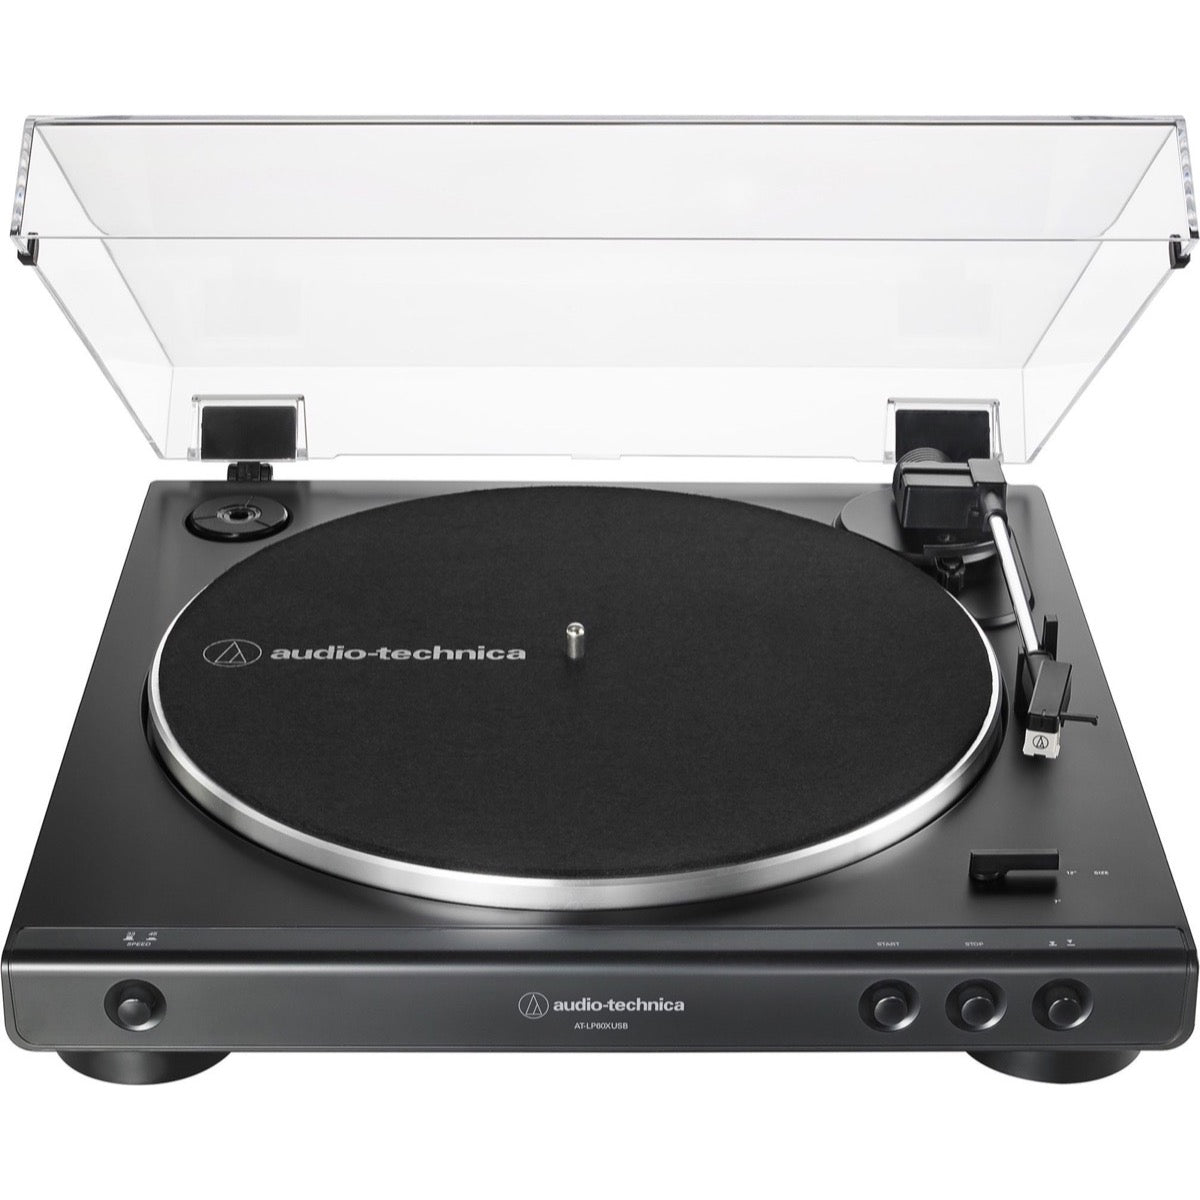 Audio-Technica AT-LP60XUSB Belt-Drive Turntable, Black